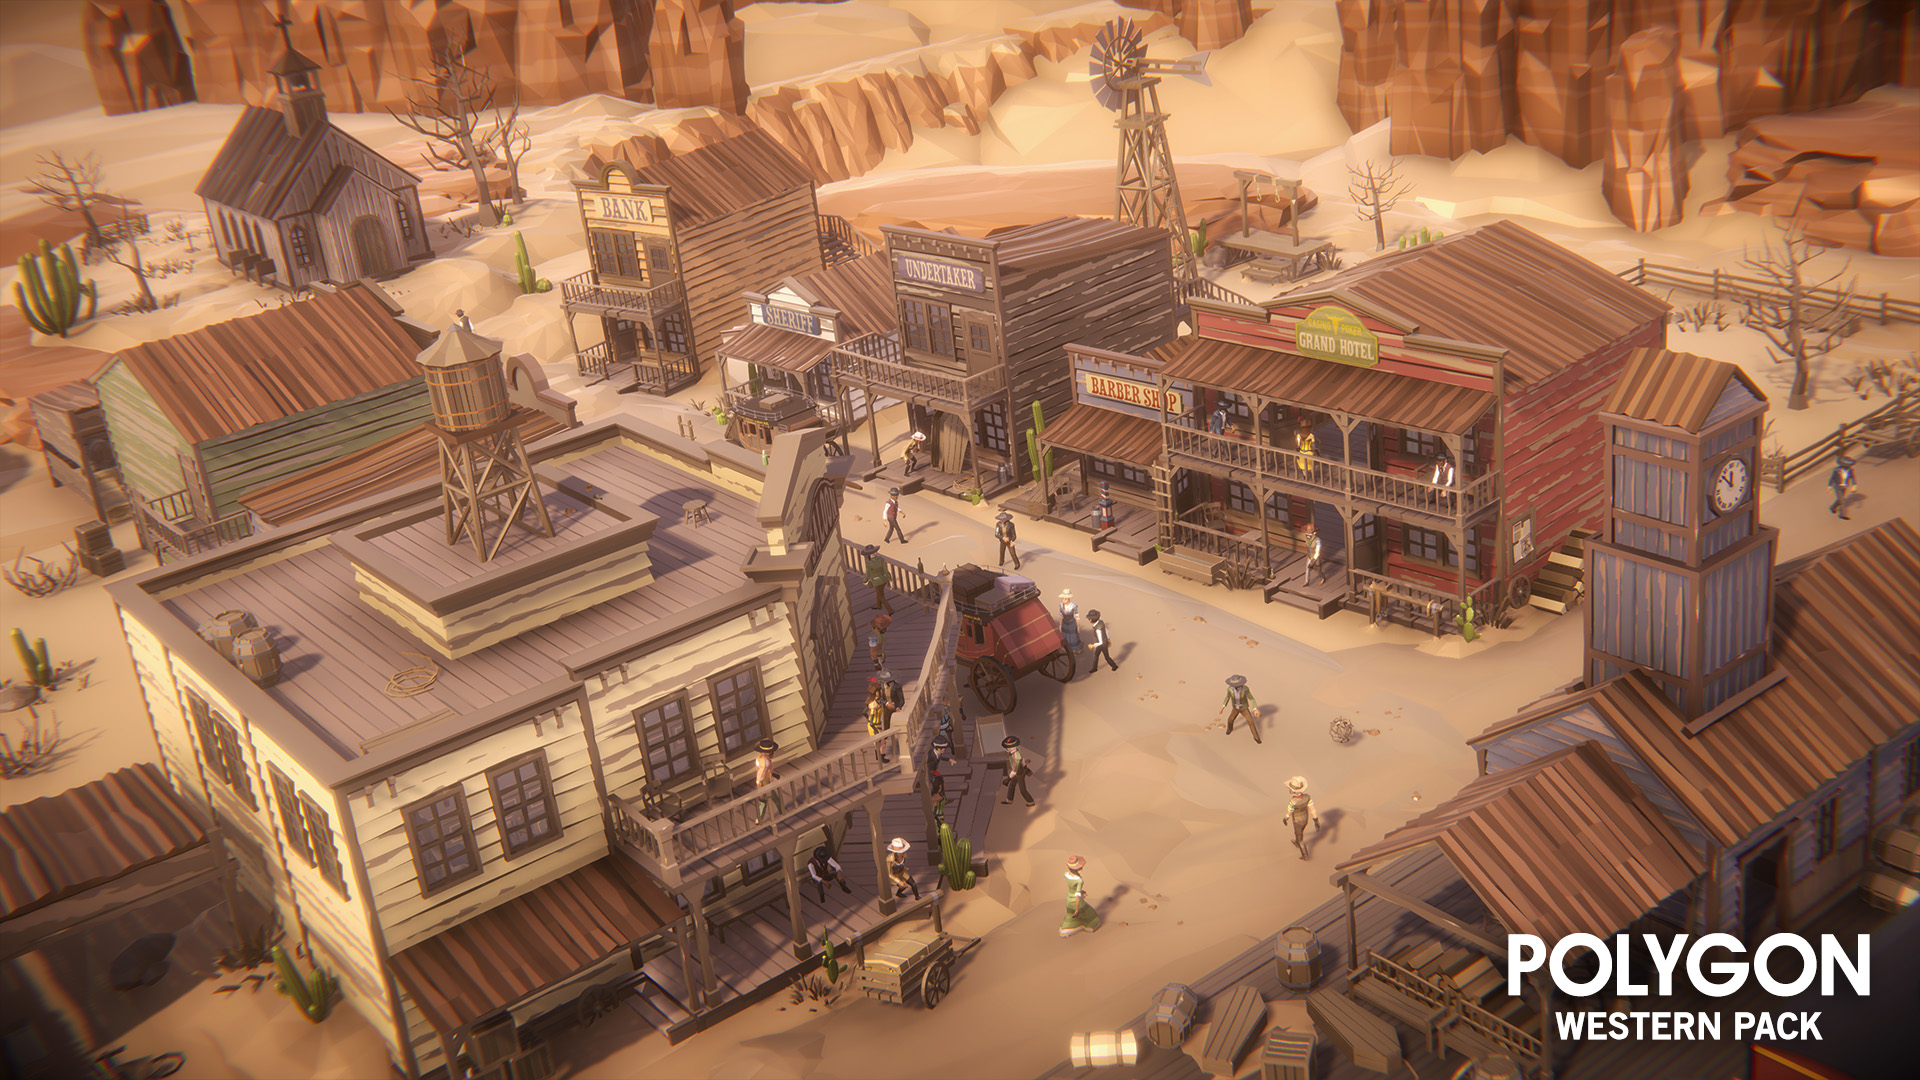 POLYGON - Western Pack by Synty Studios in Environments - UE4